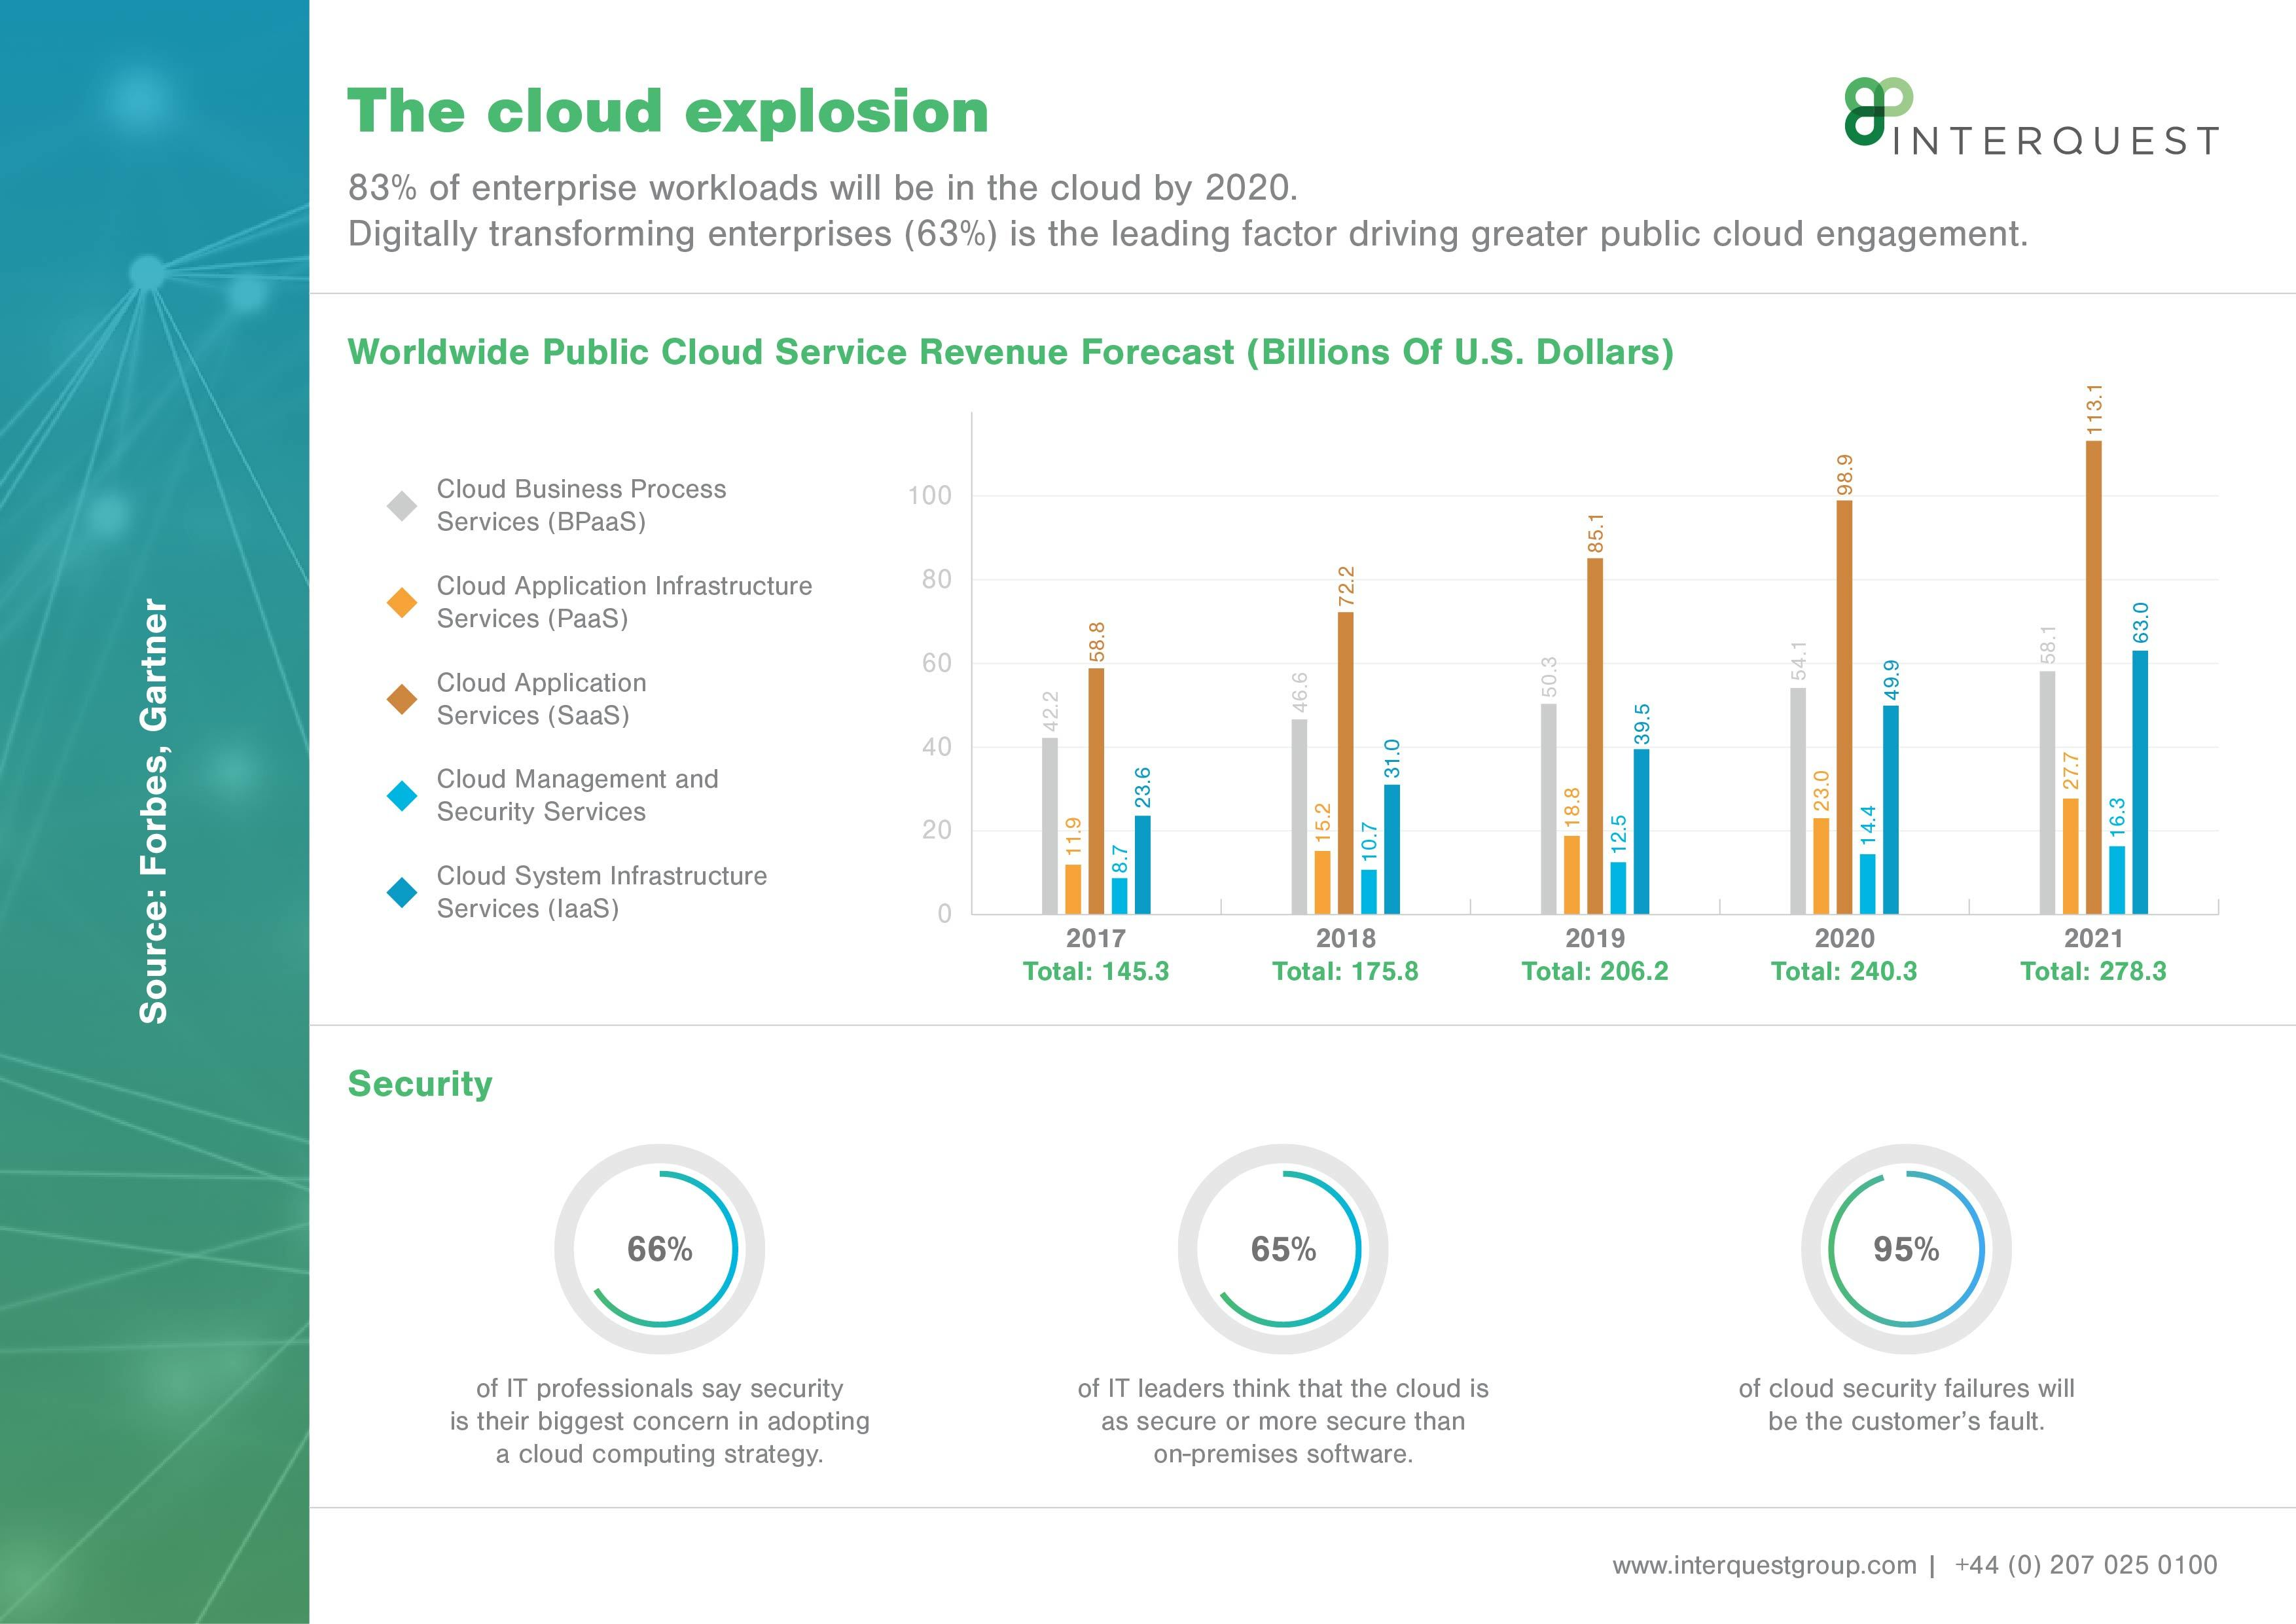 Cloud revenue and security